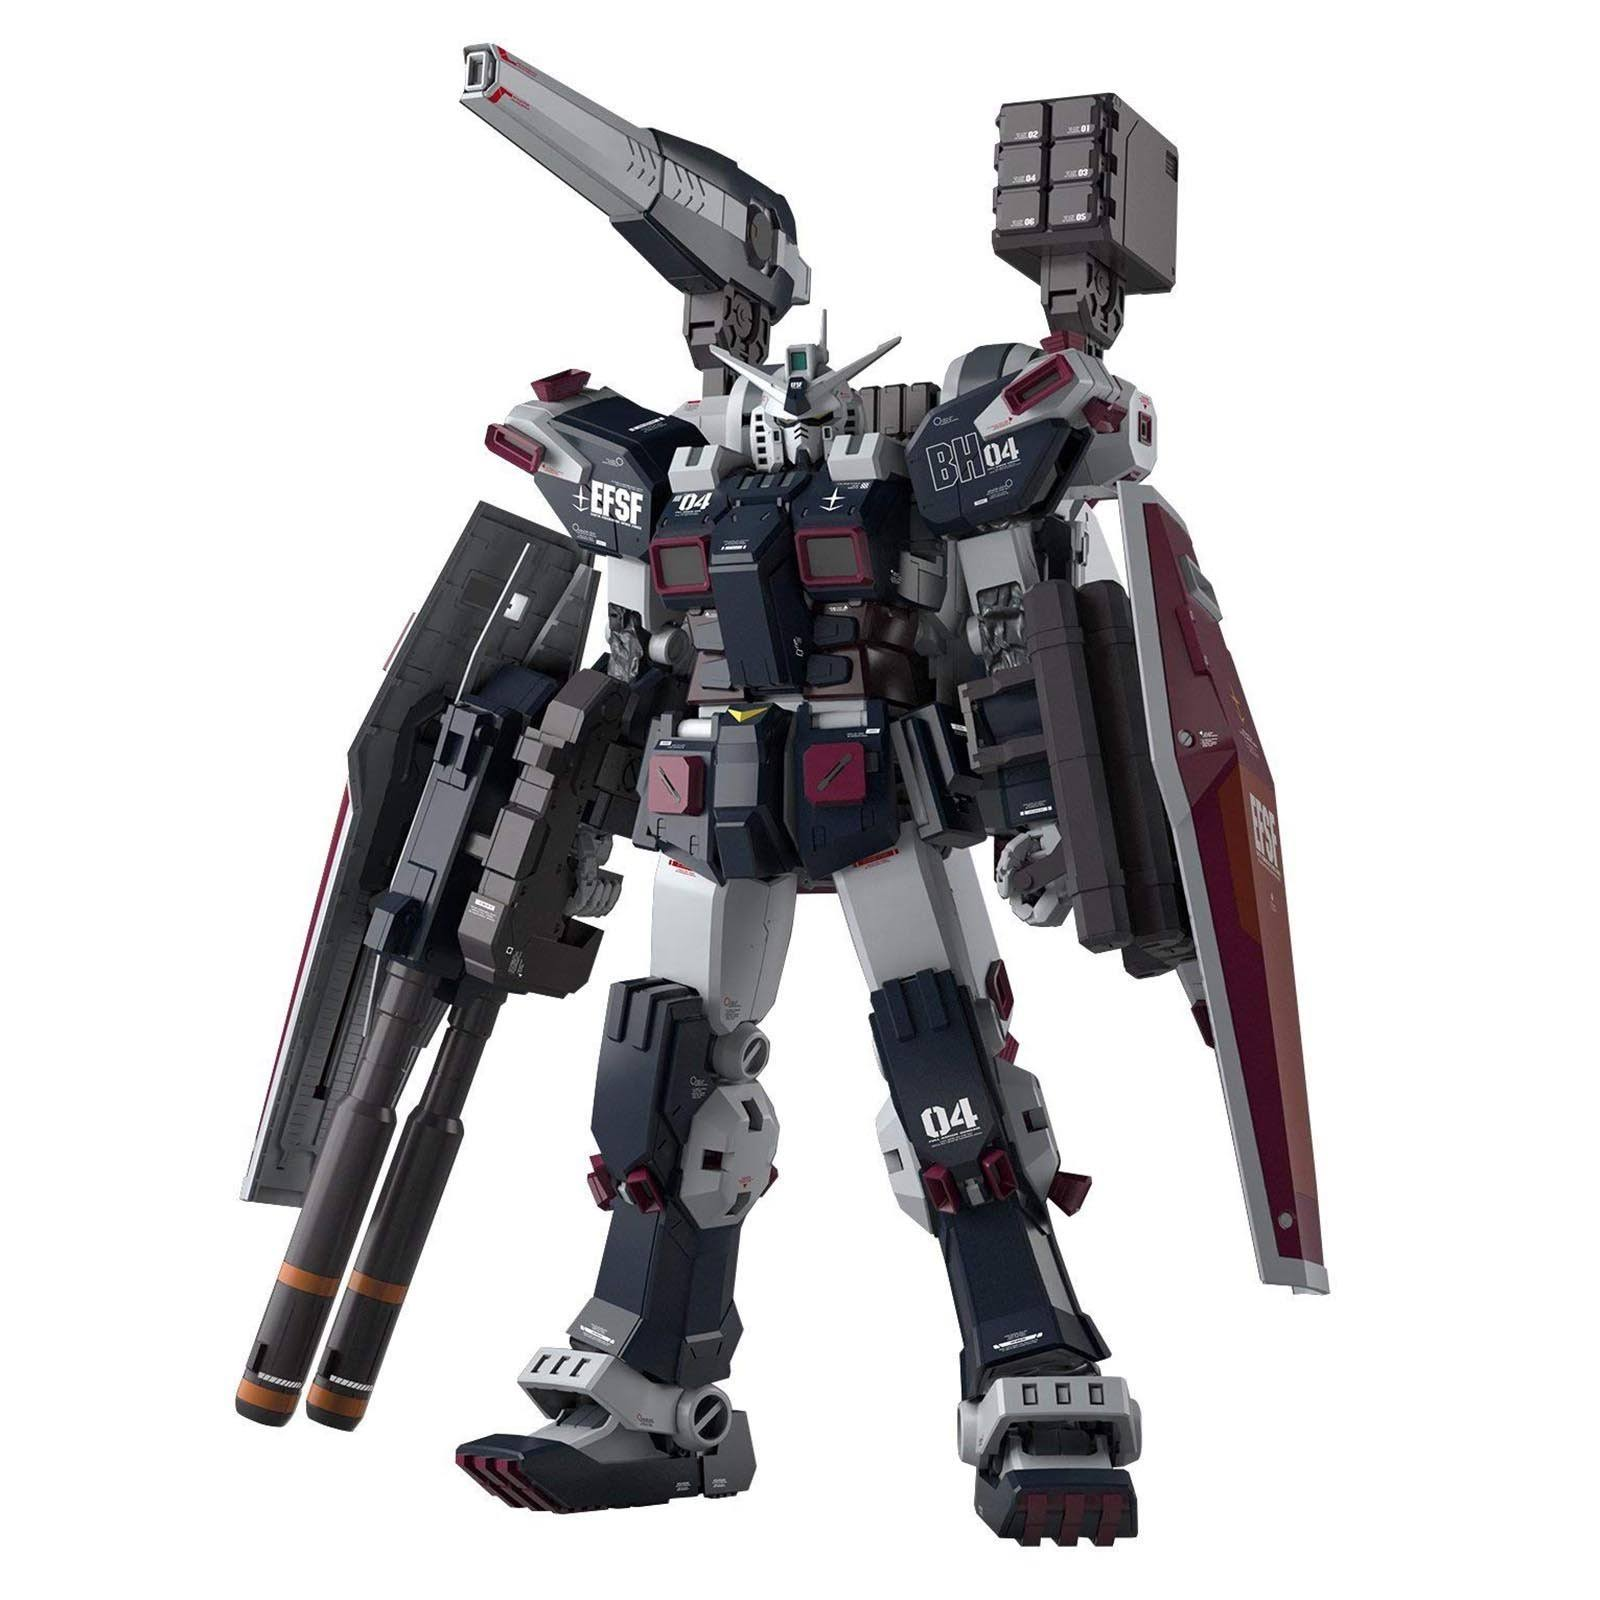 Bandai Hobby MG Full Armor Gundam Thunderbolt Ver. KA Building Kit - 1:100 Scale